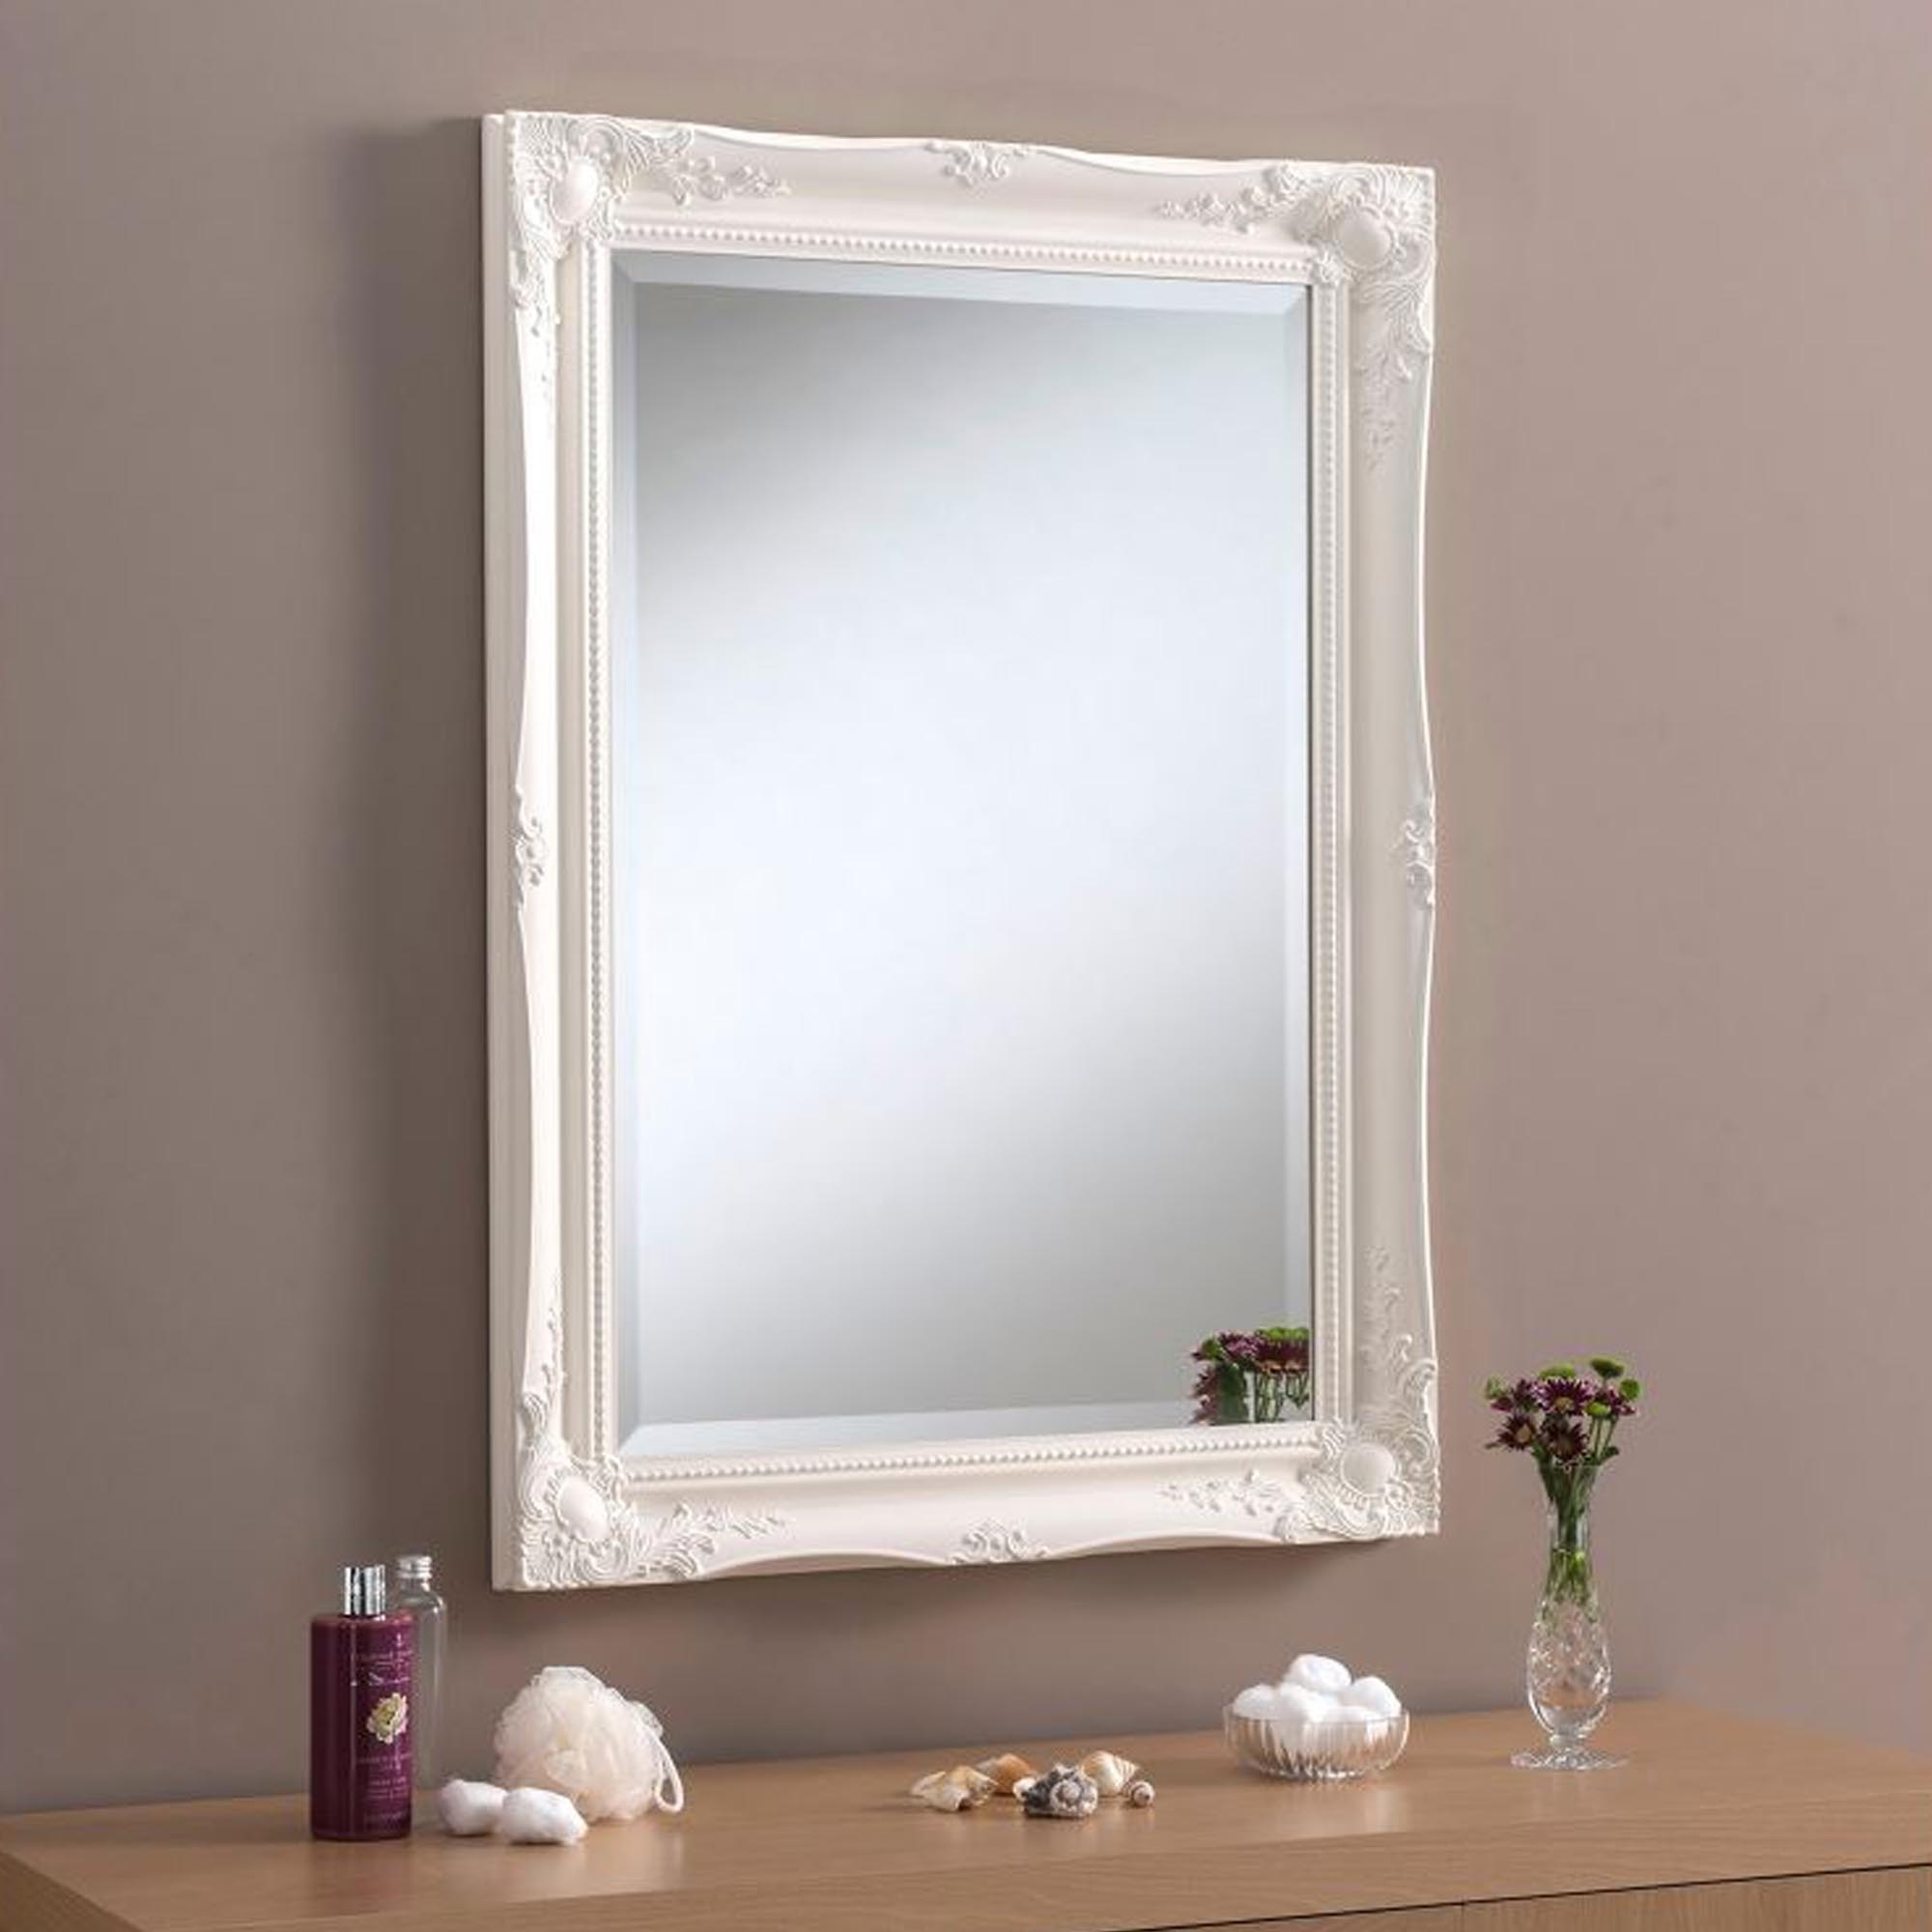 Decorative Ornate Antique French Style White Wall Mirror With Most Recent Antique White Wall Mirrors (View 9 of 20)